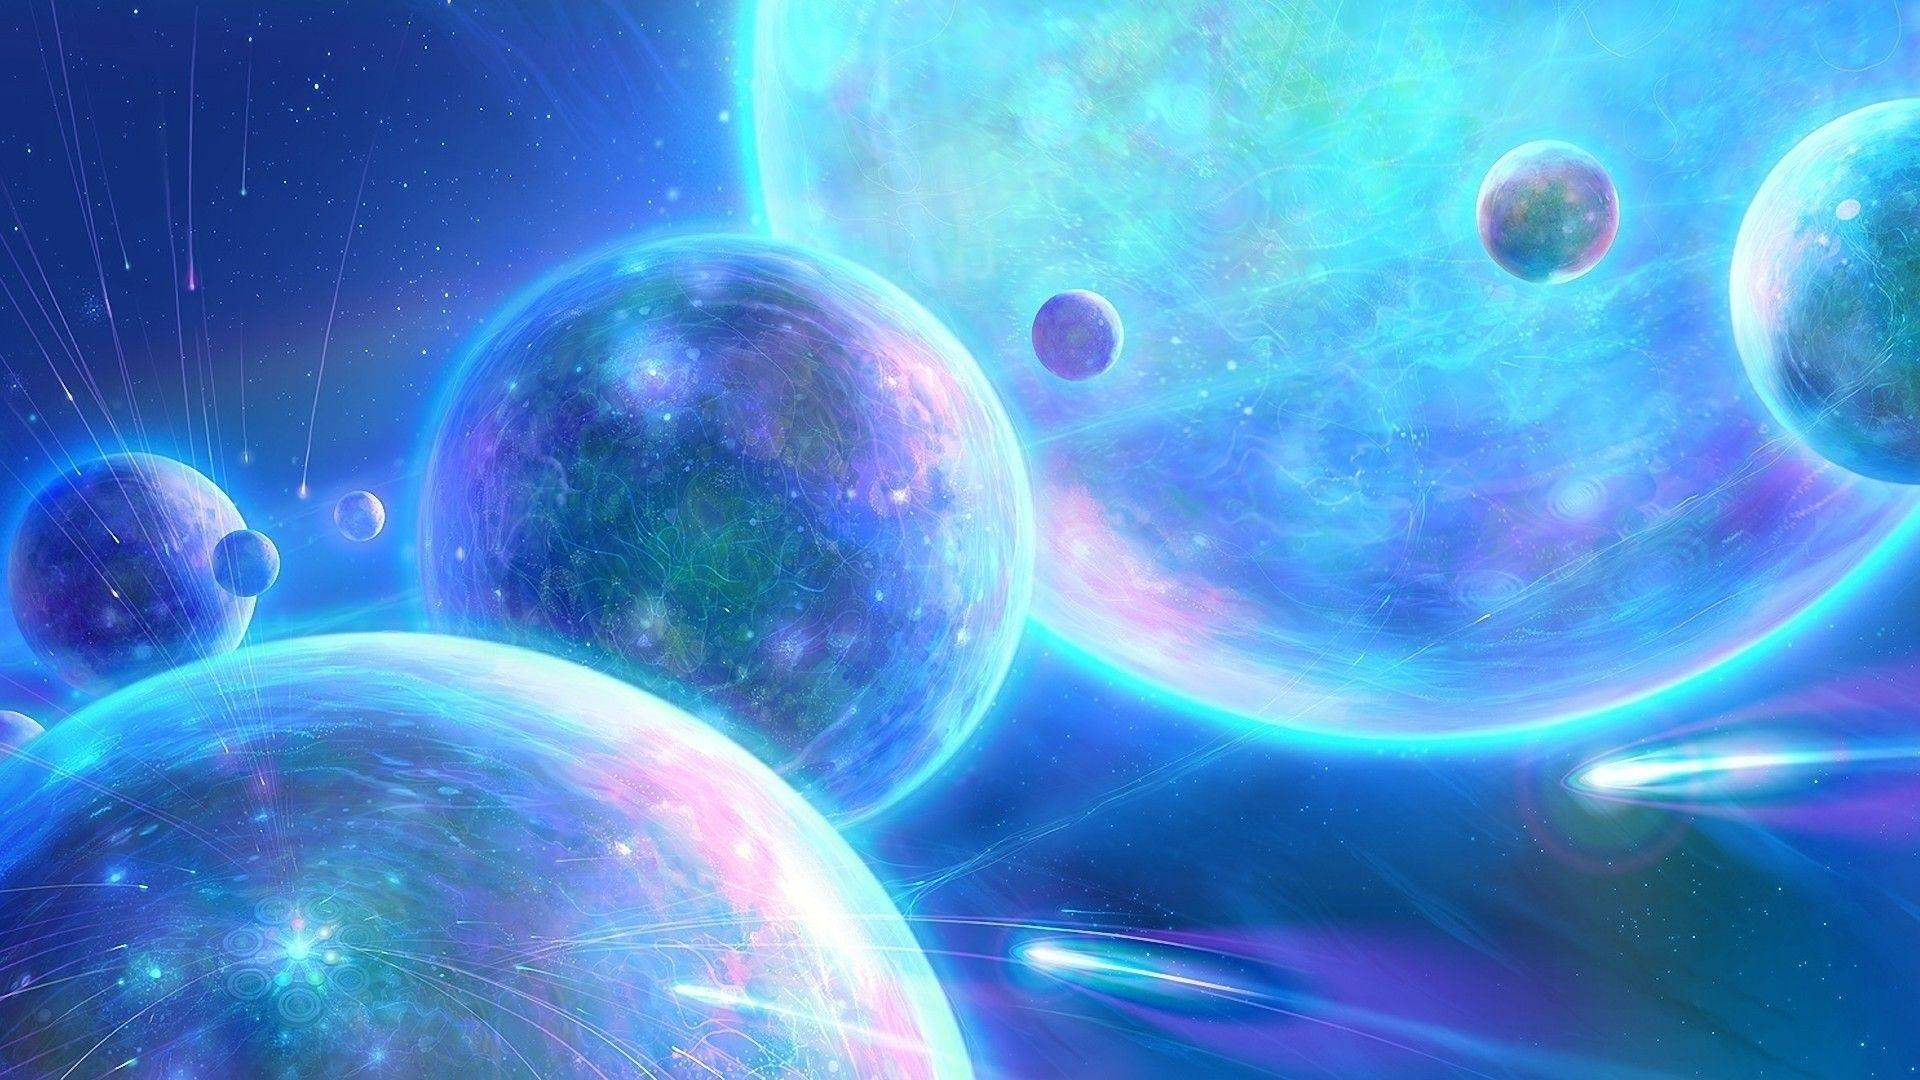 Abstract Kids Outer Space Wallpapers for Rooms 1920x1080PX